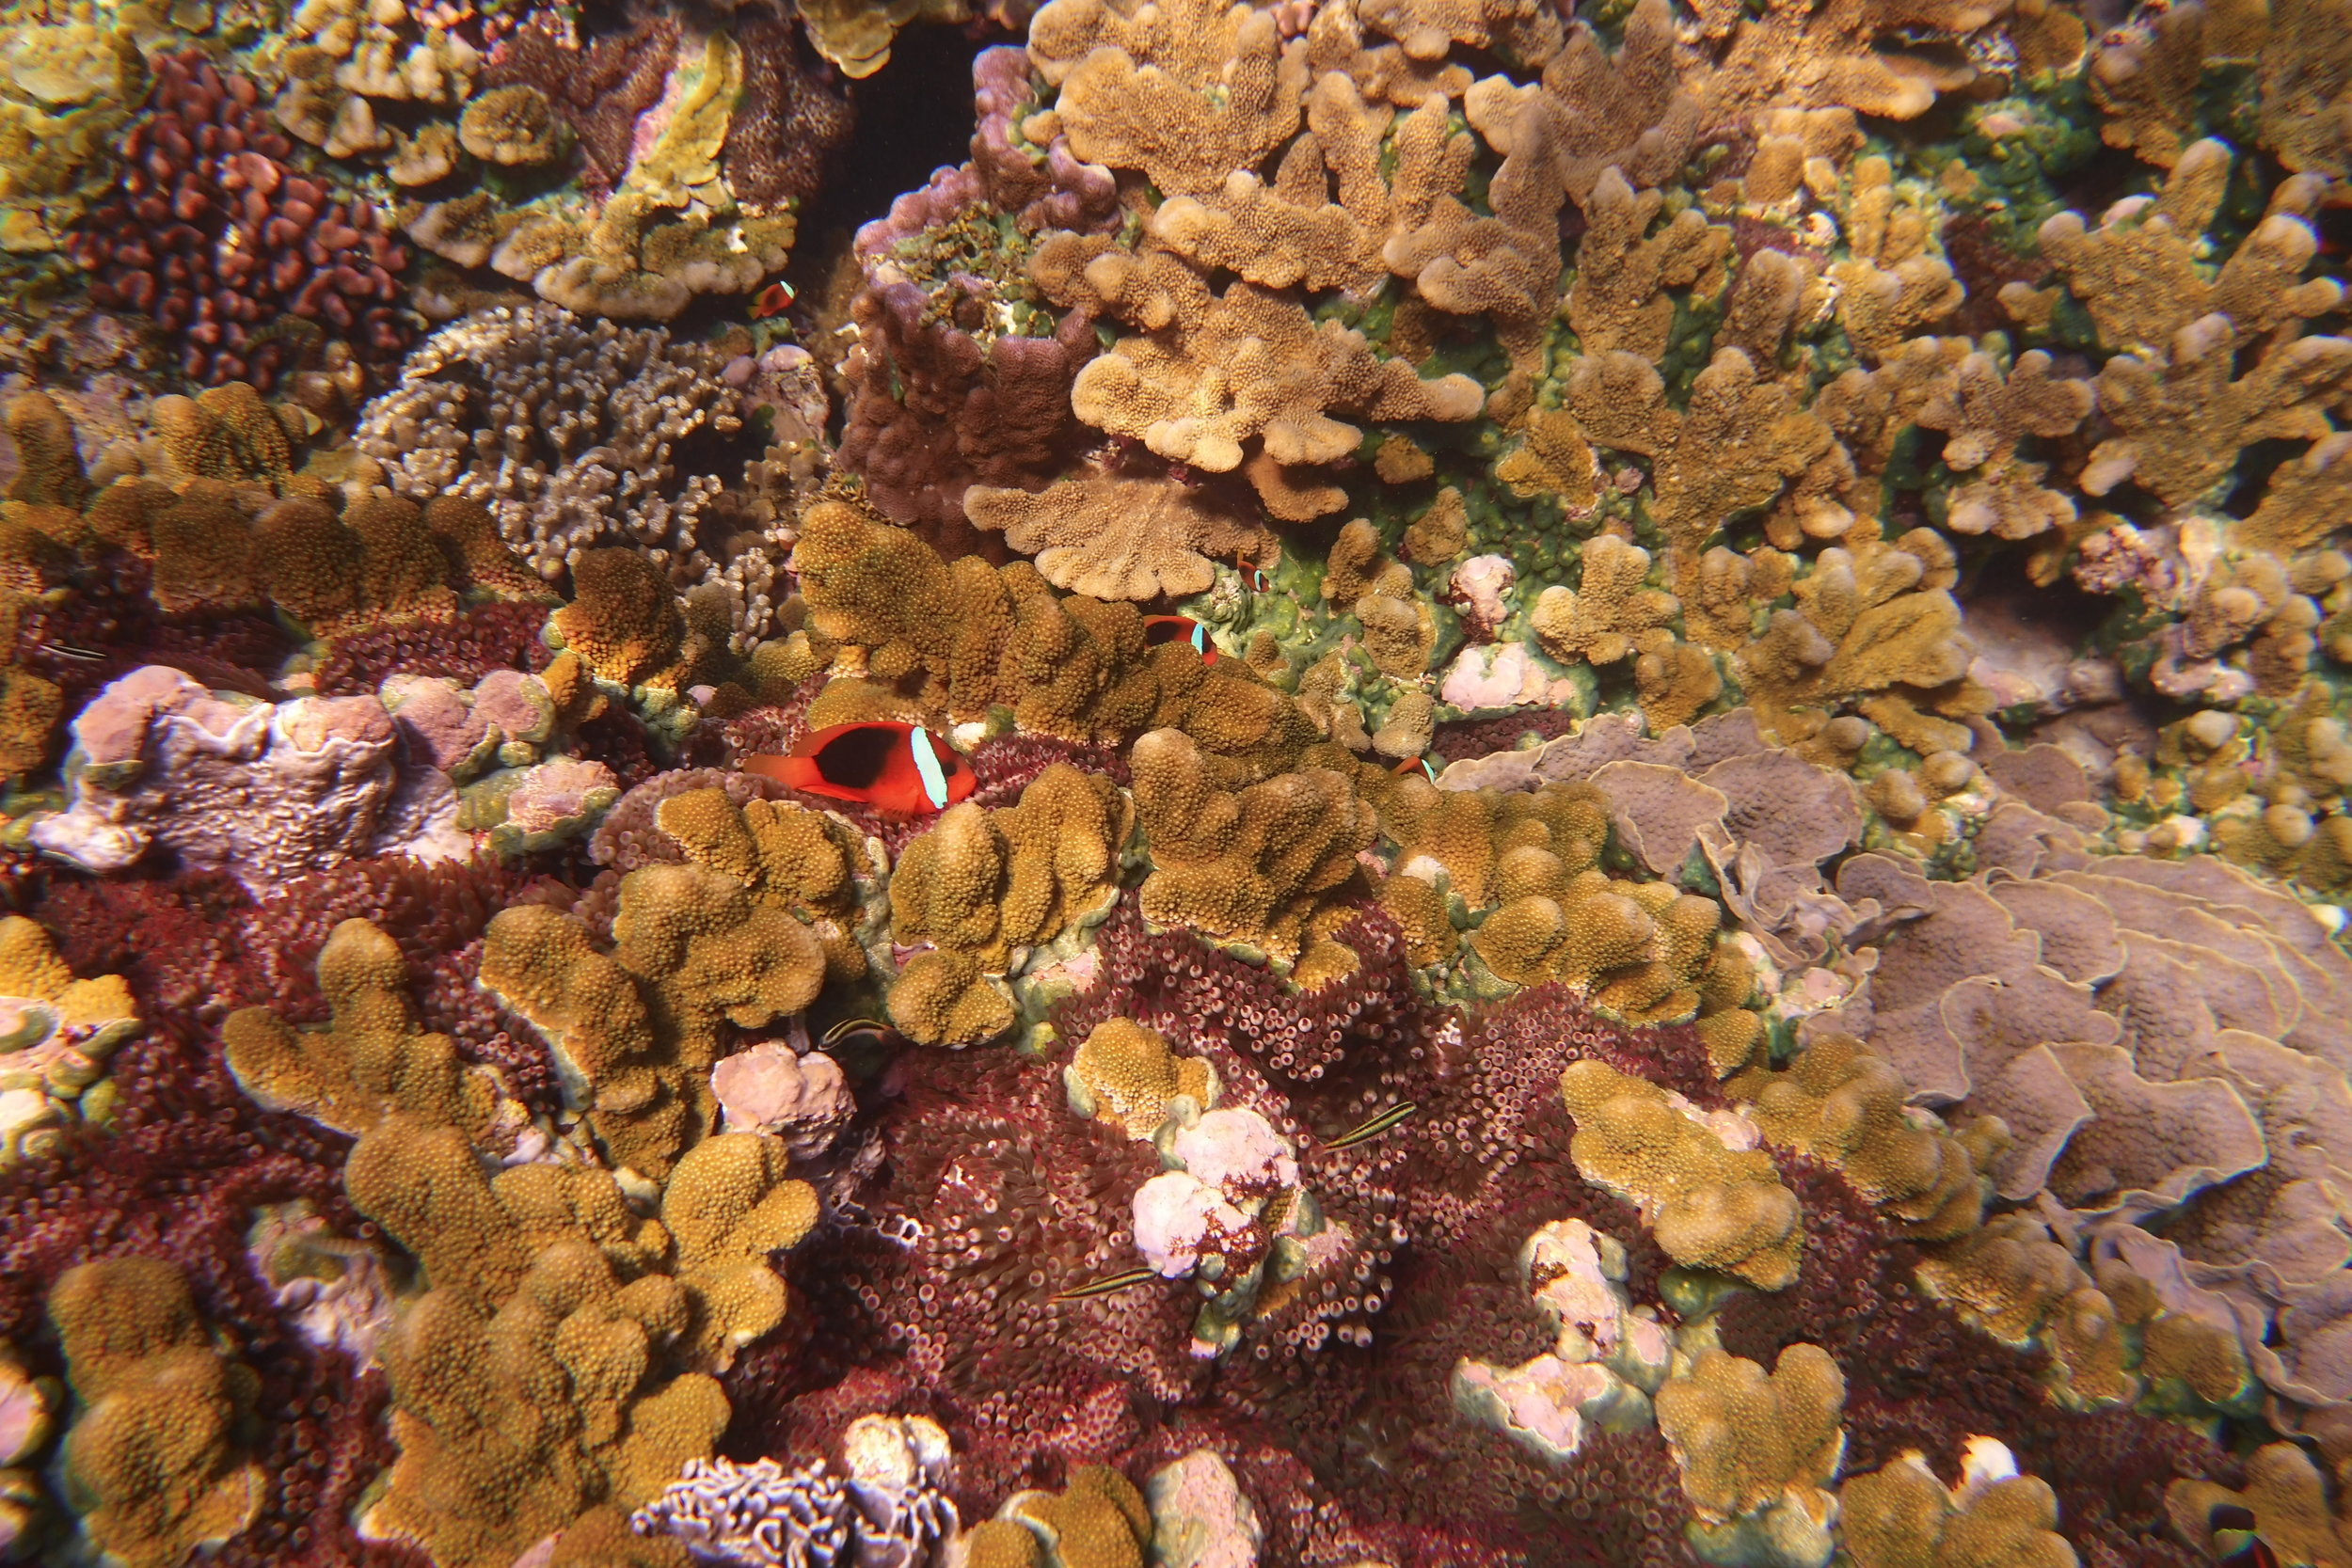 The water was extraordinarily clear, and the hard corals were just layered over each other.